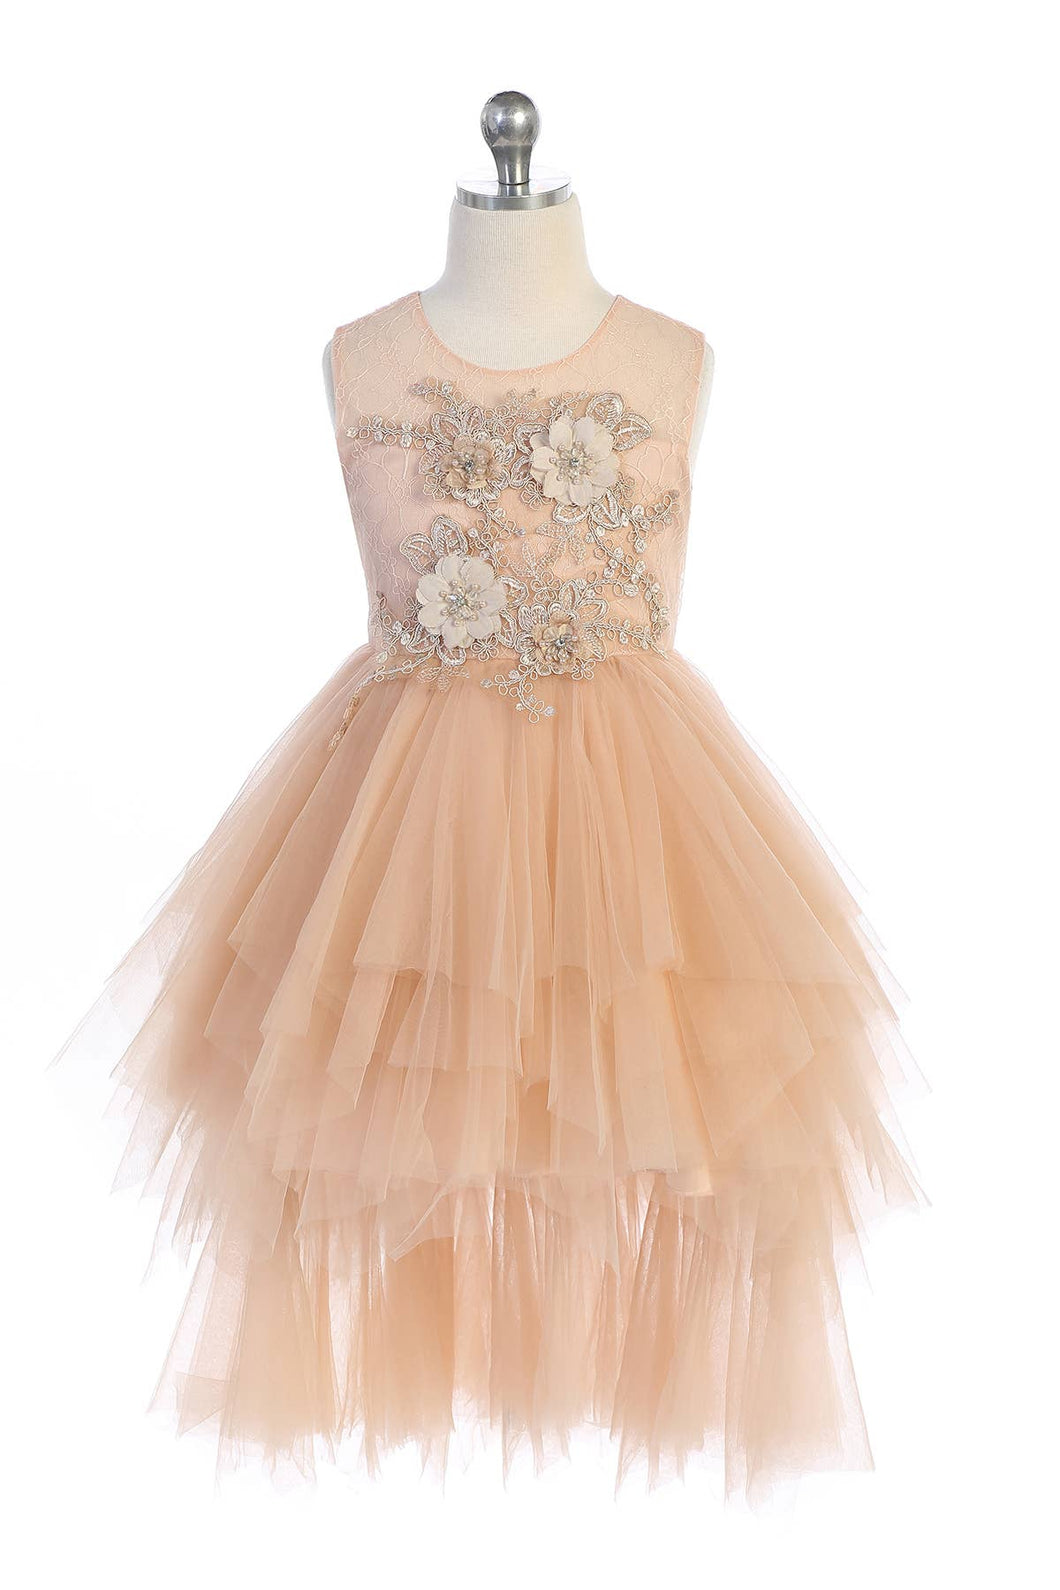 Vintage Rose Tulle Dress